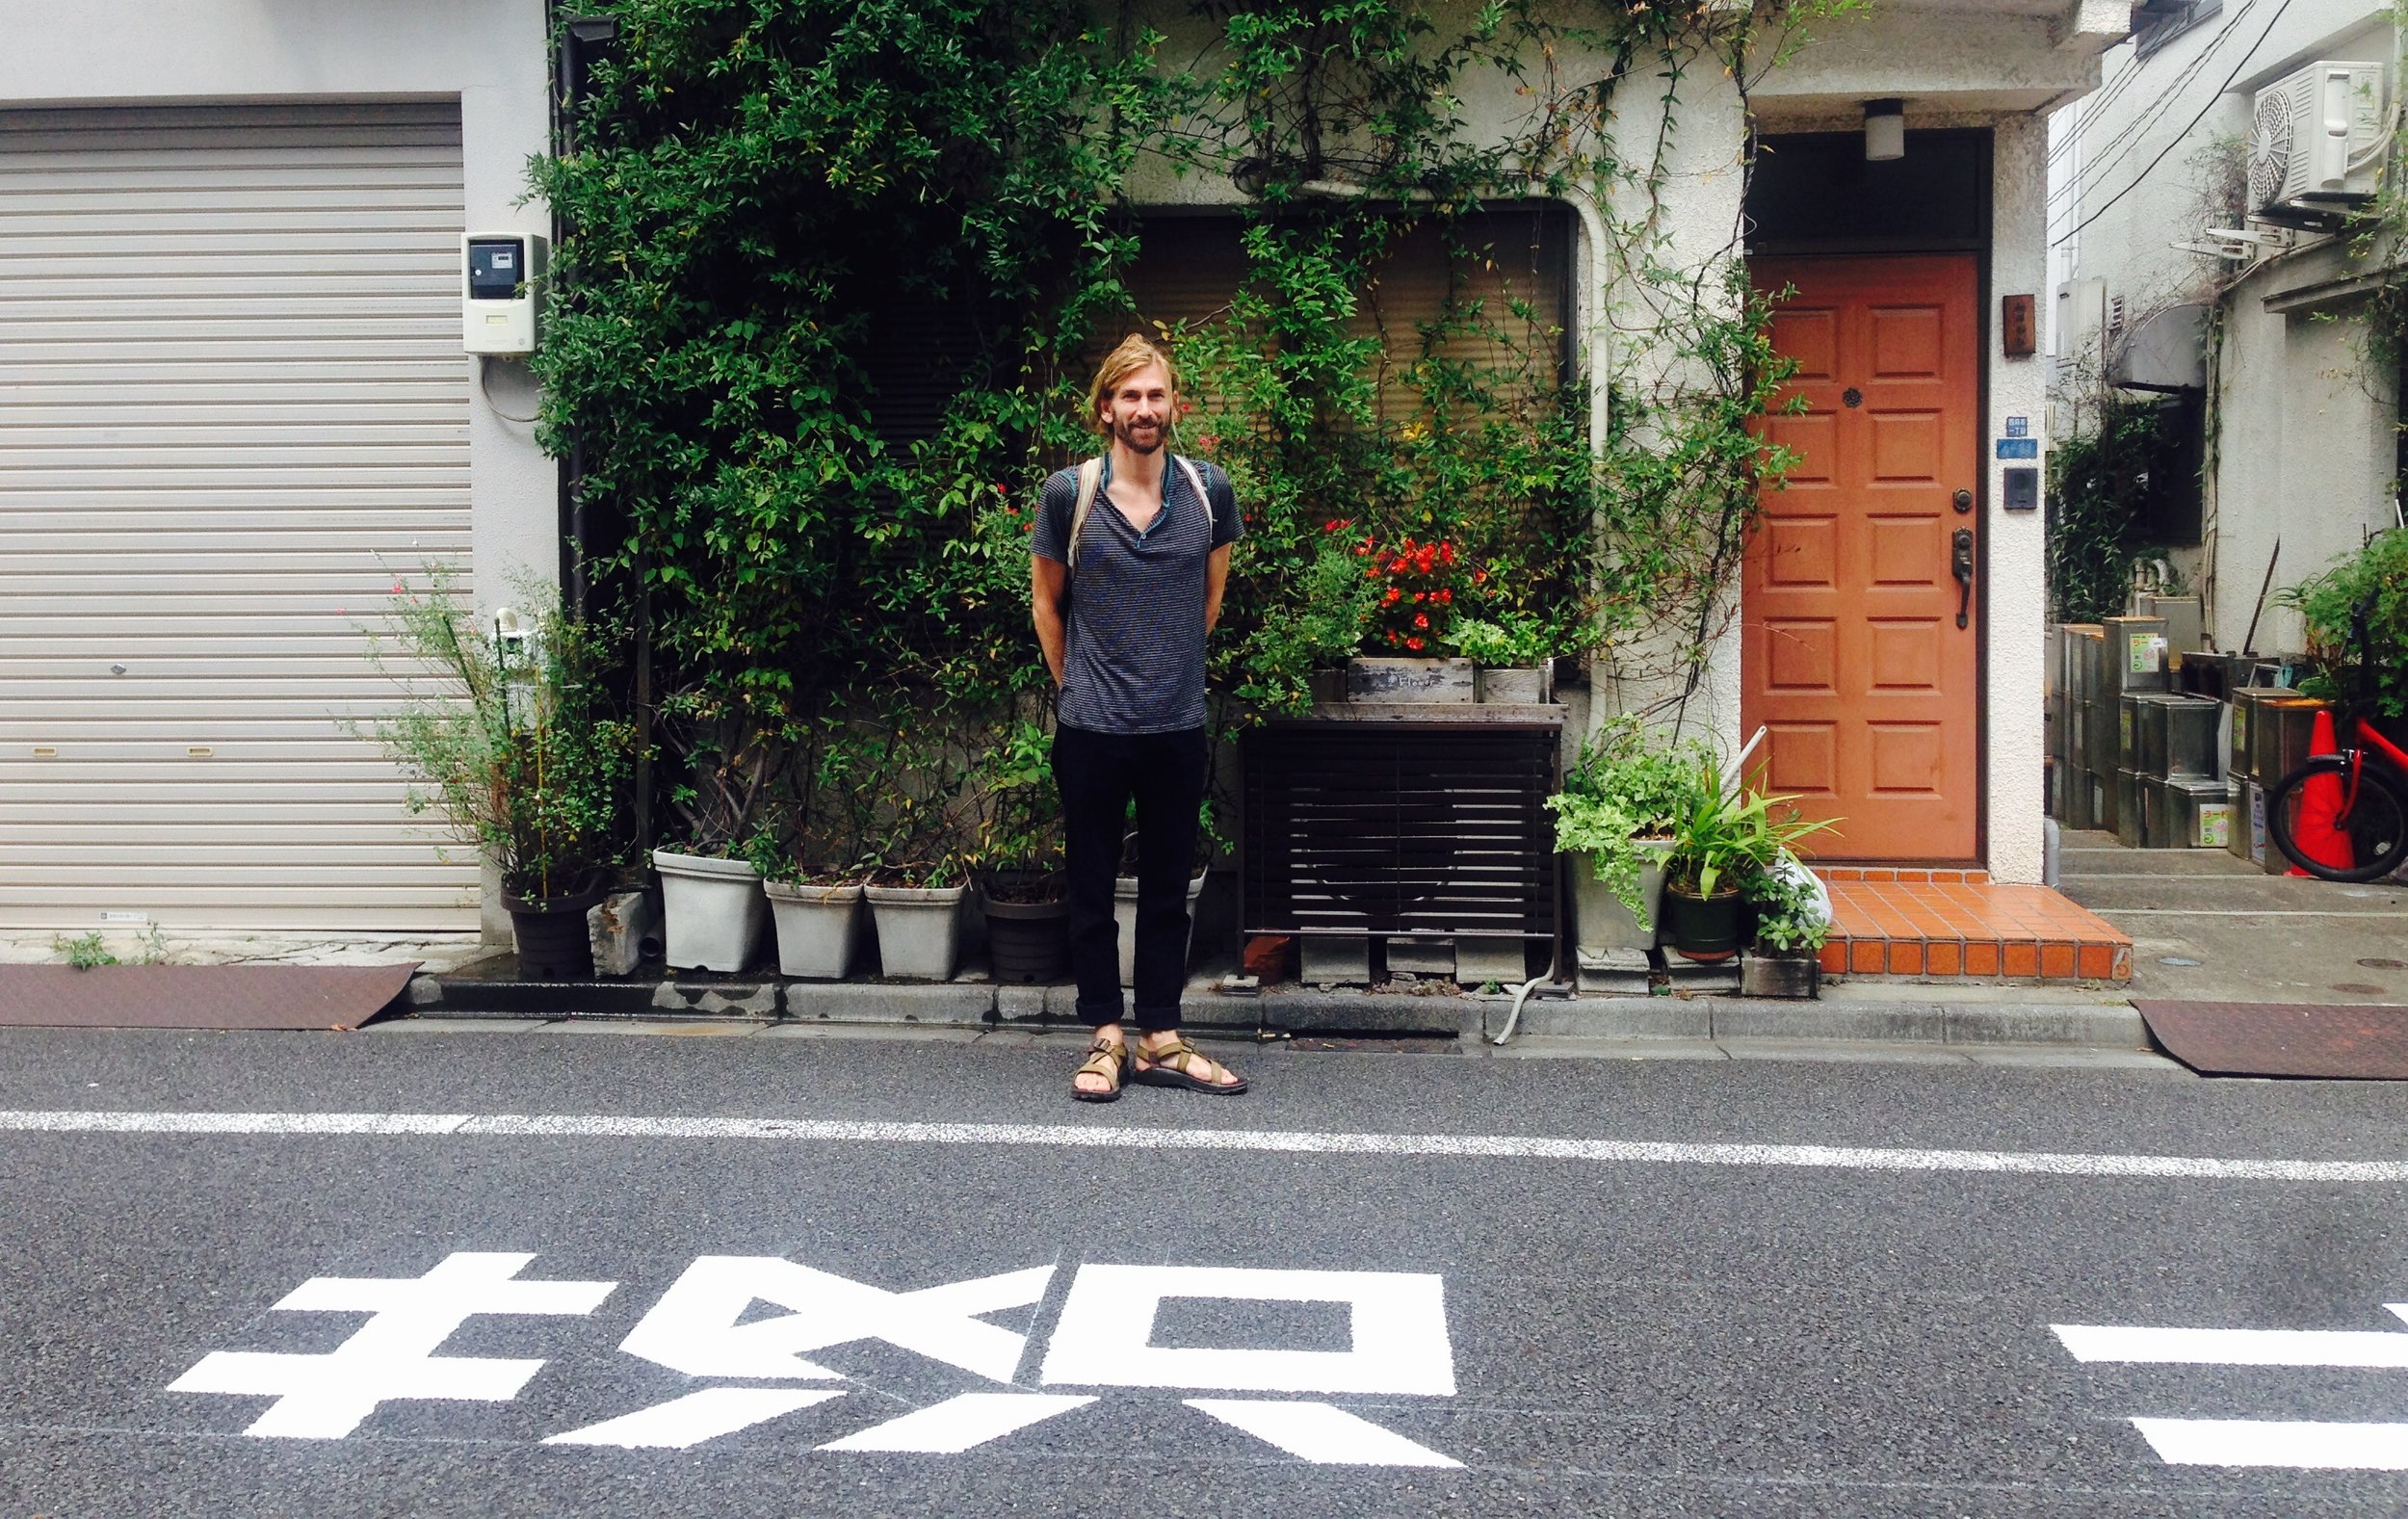 Wandering the residential streets of Roppongi